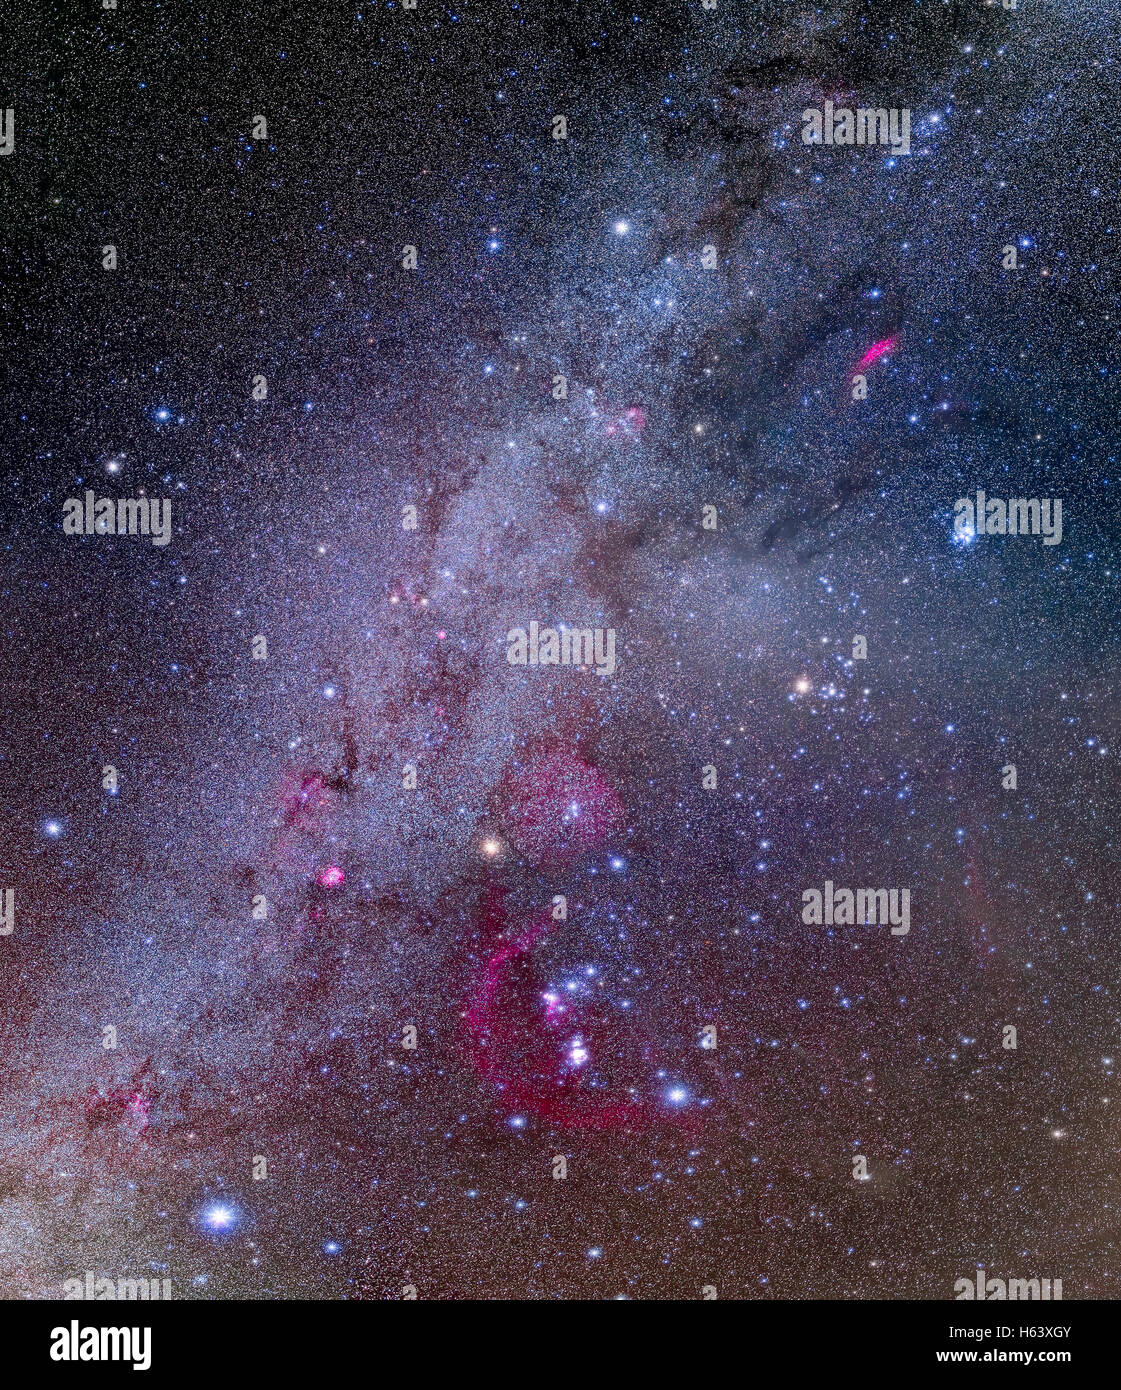 A mosaic of the northern winter Milky Way and brilliant stars and constellations in and around Orion the Hunter. - Stock Image